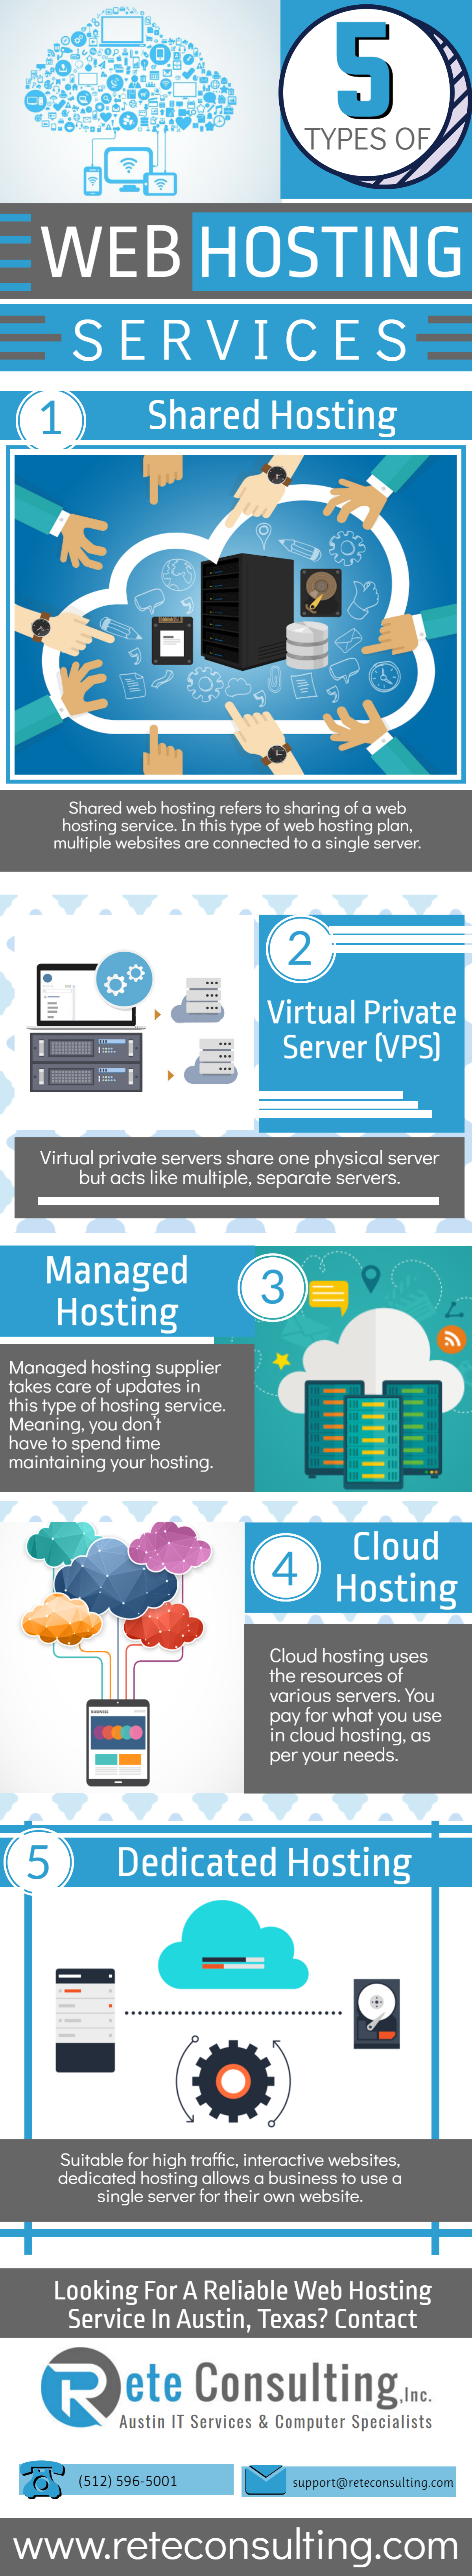 5 Types Of Web Hosting Services